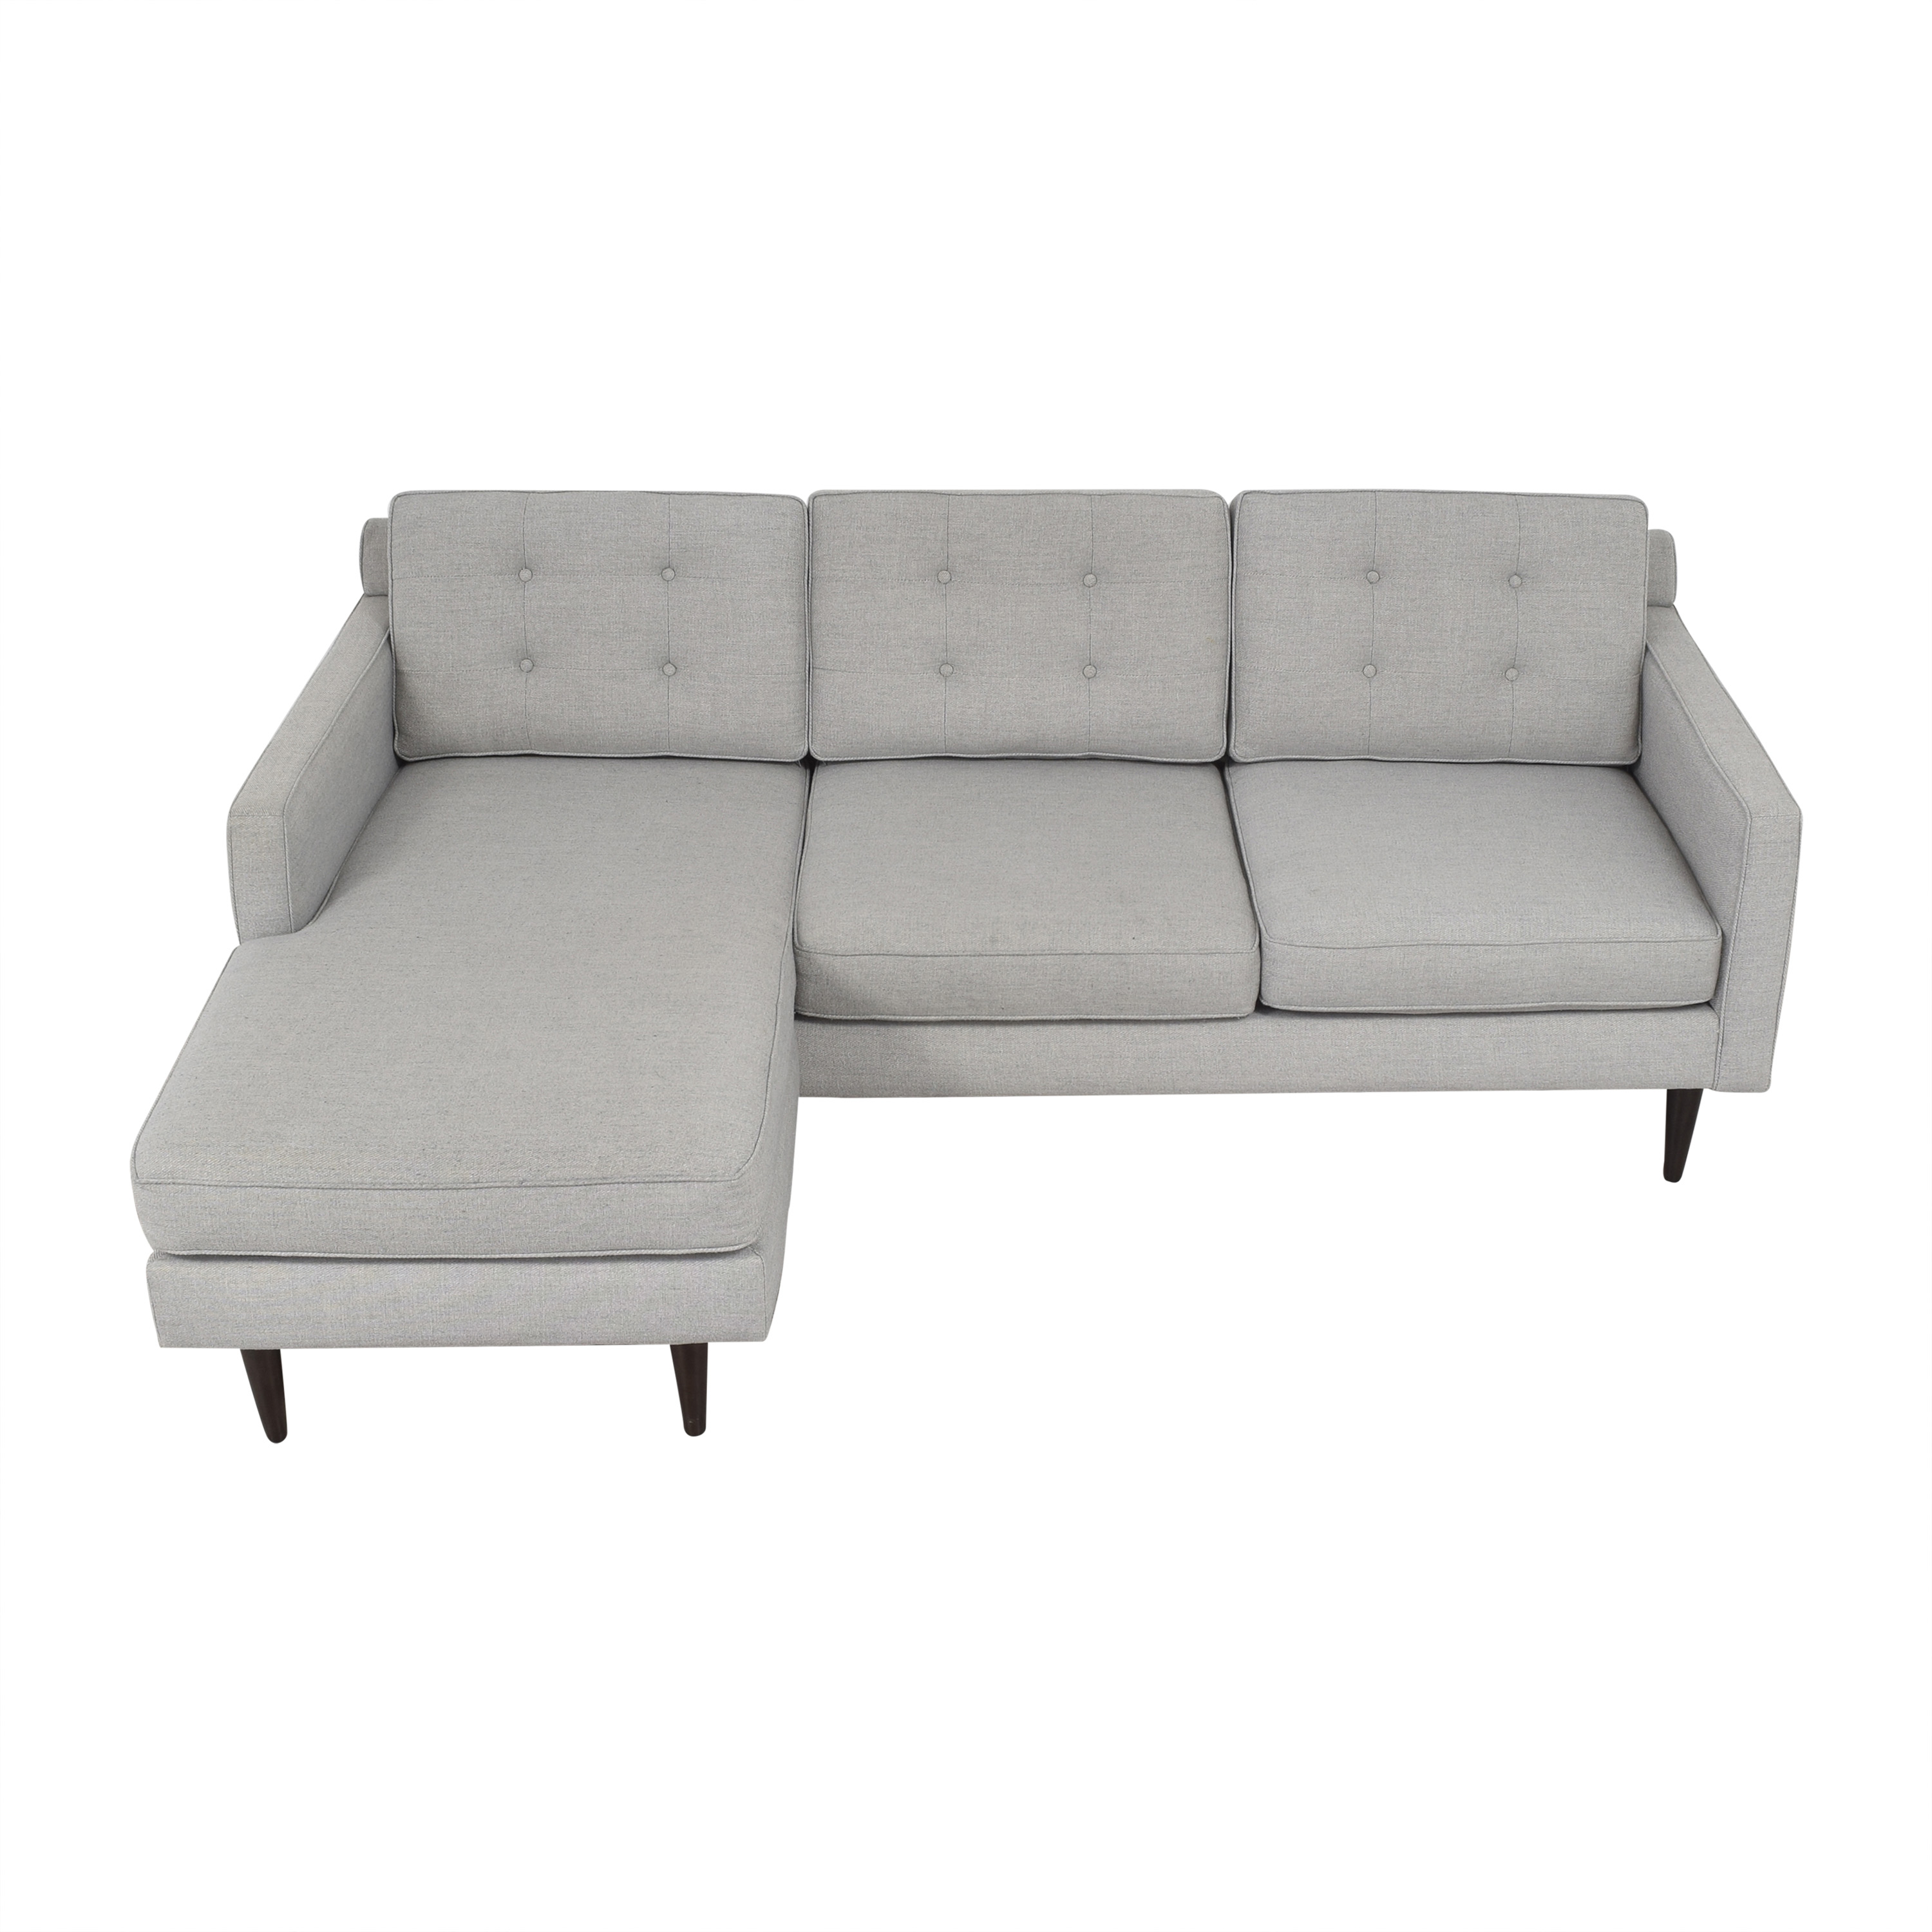 West Elm West Elm Drake Reversible Chaise Sectional Sofa second hand